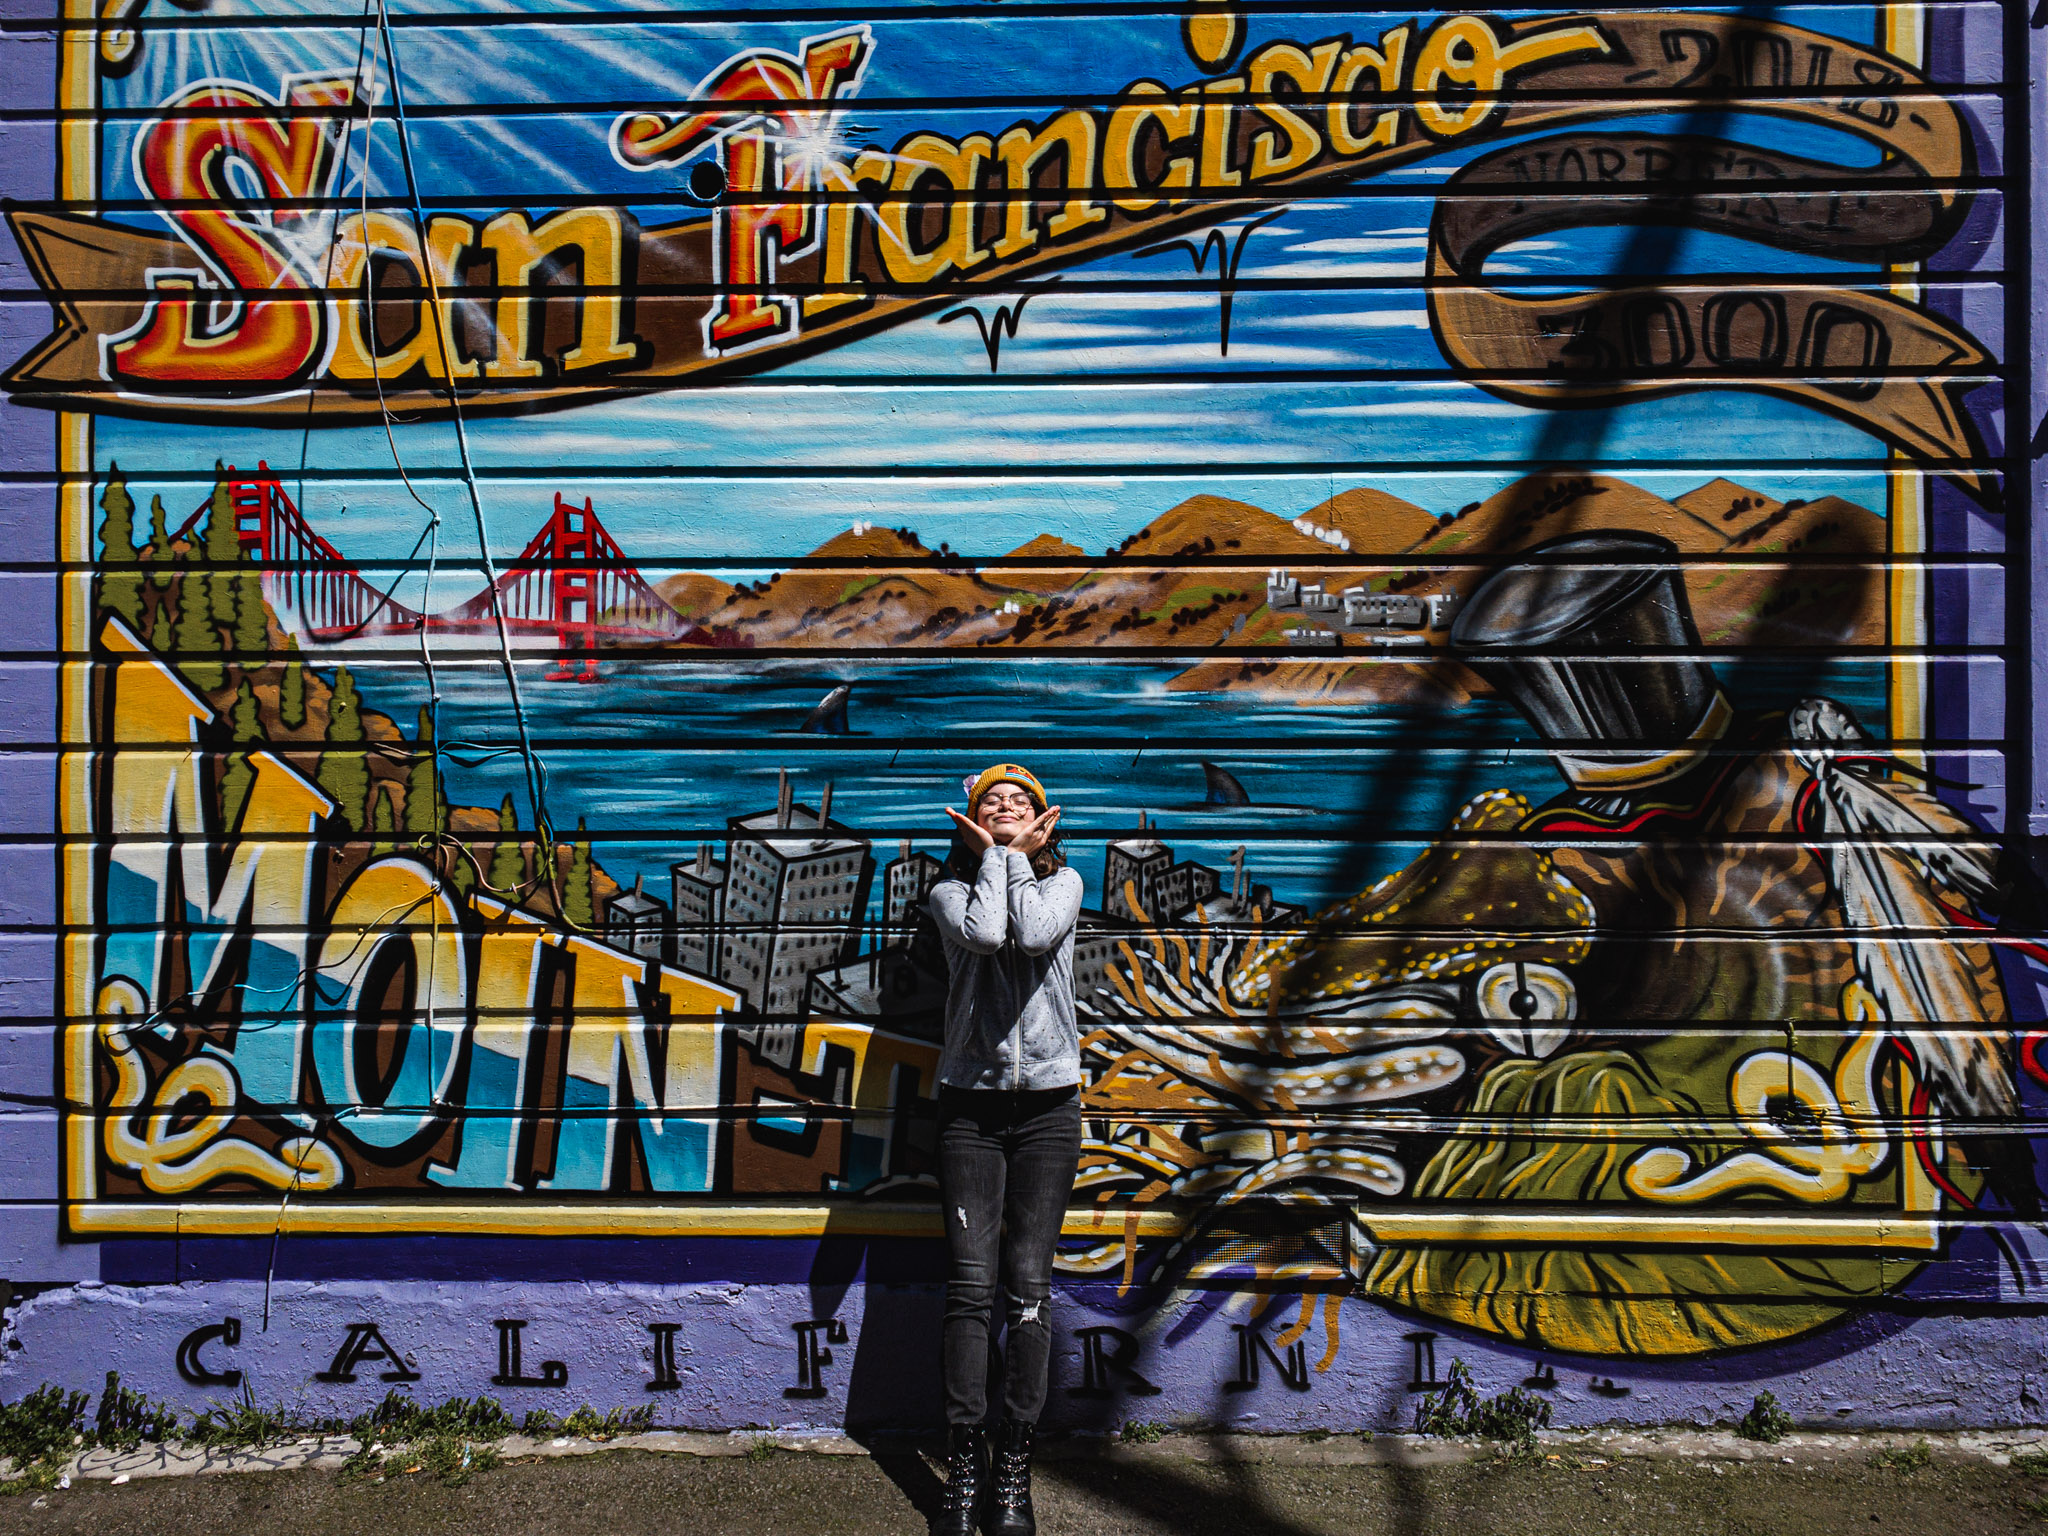 A young girl stands in front of a mural in the Mission District in San Francisco, CA